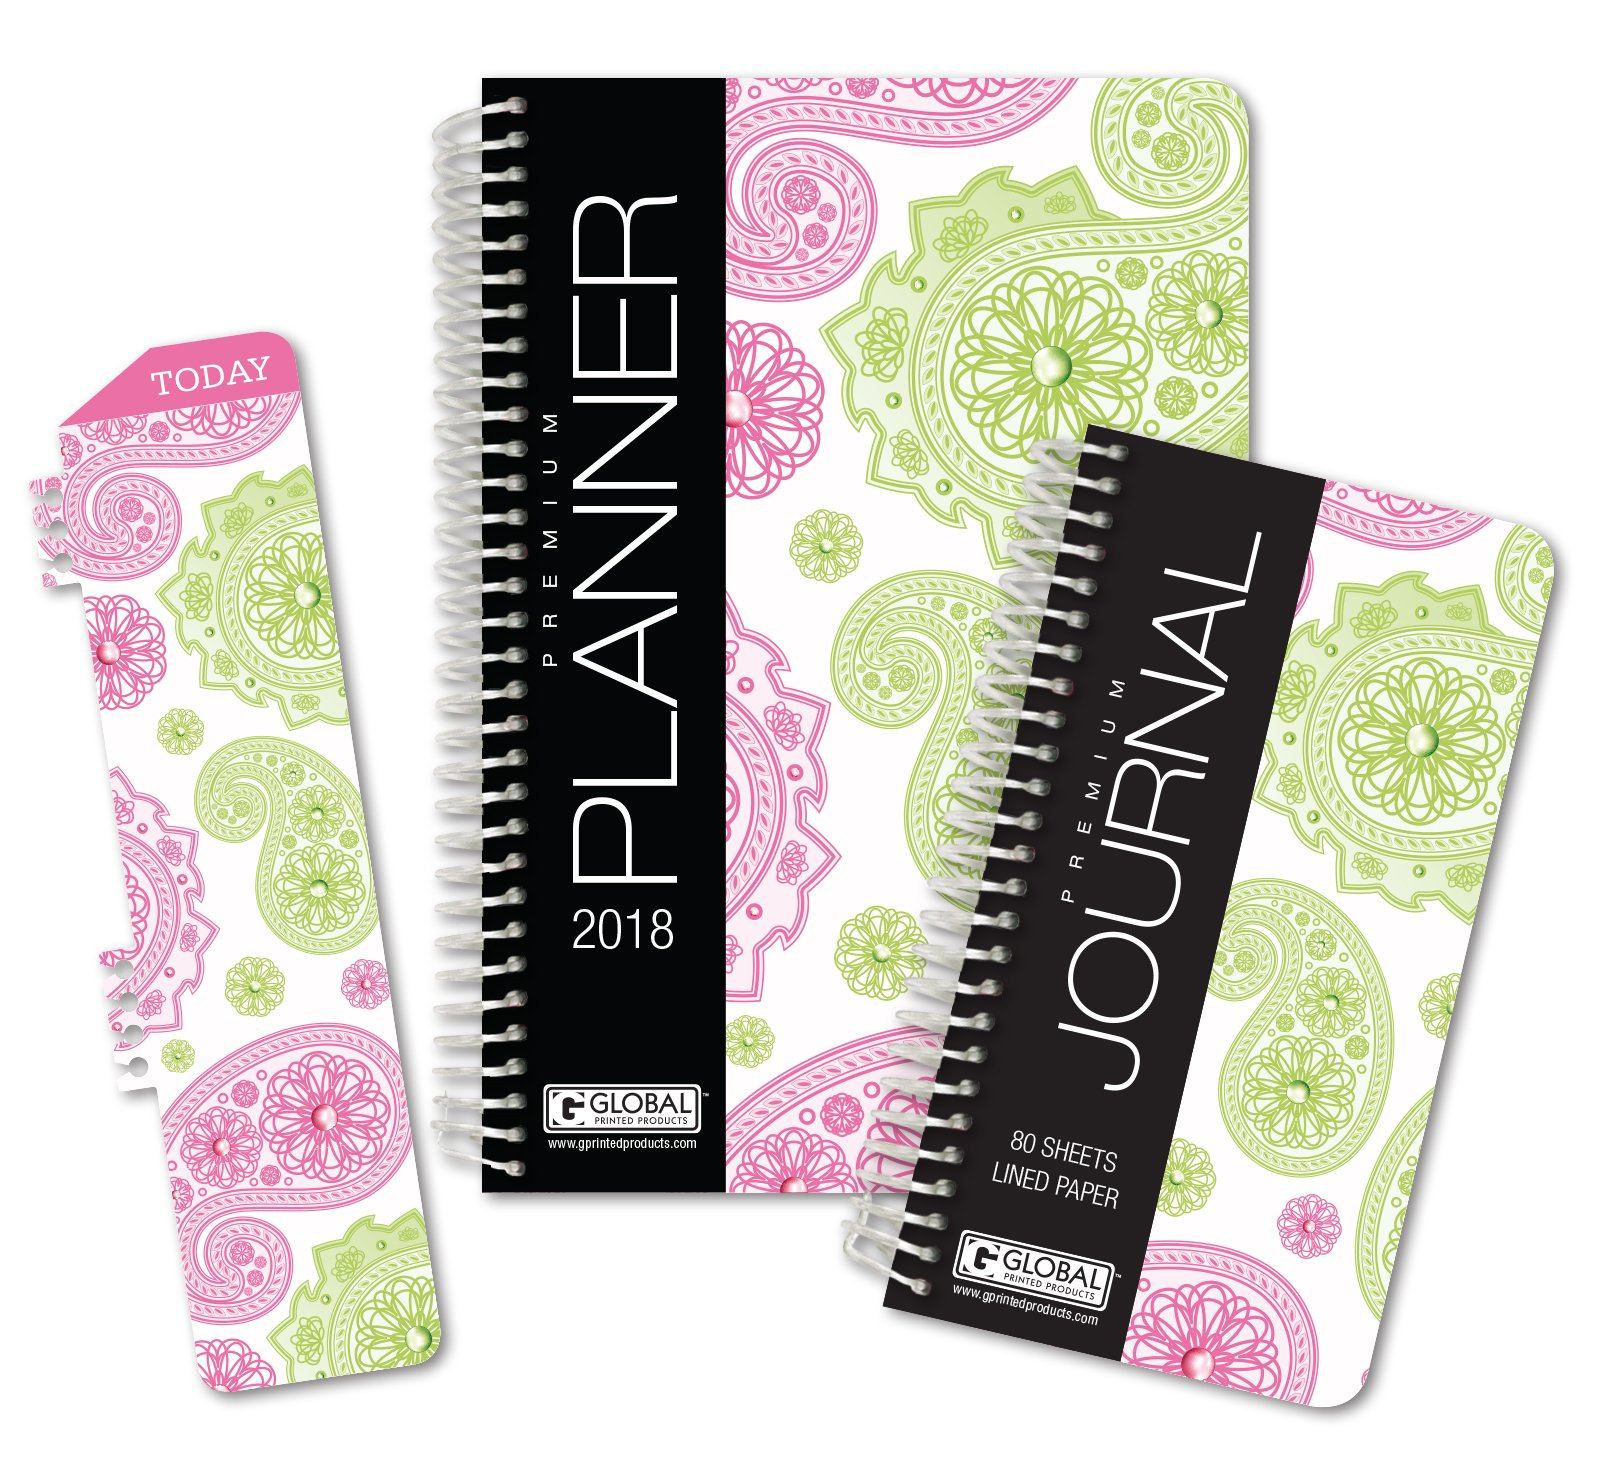 best planner 2018 agenda for productivity durability and style 5x8 daily planner weekly